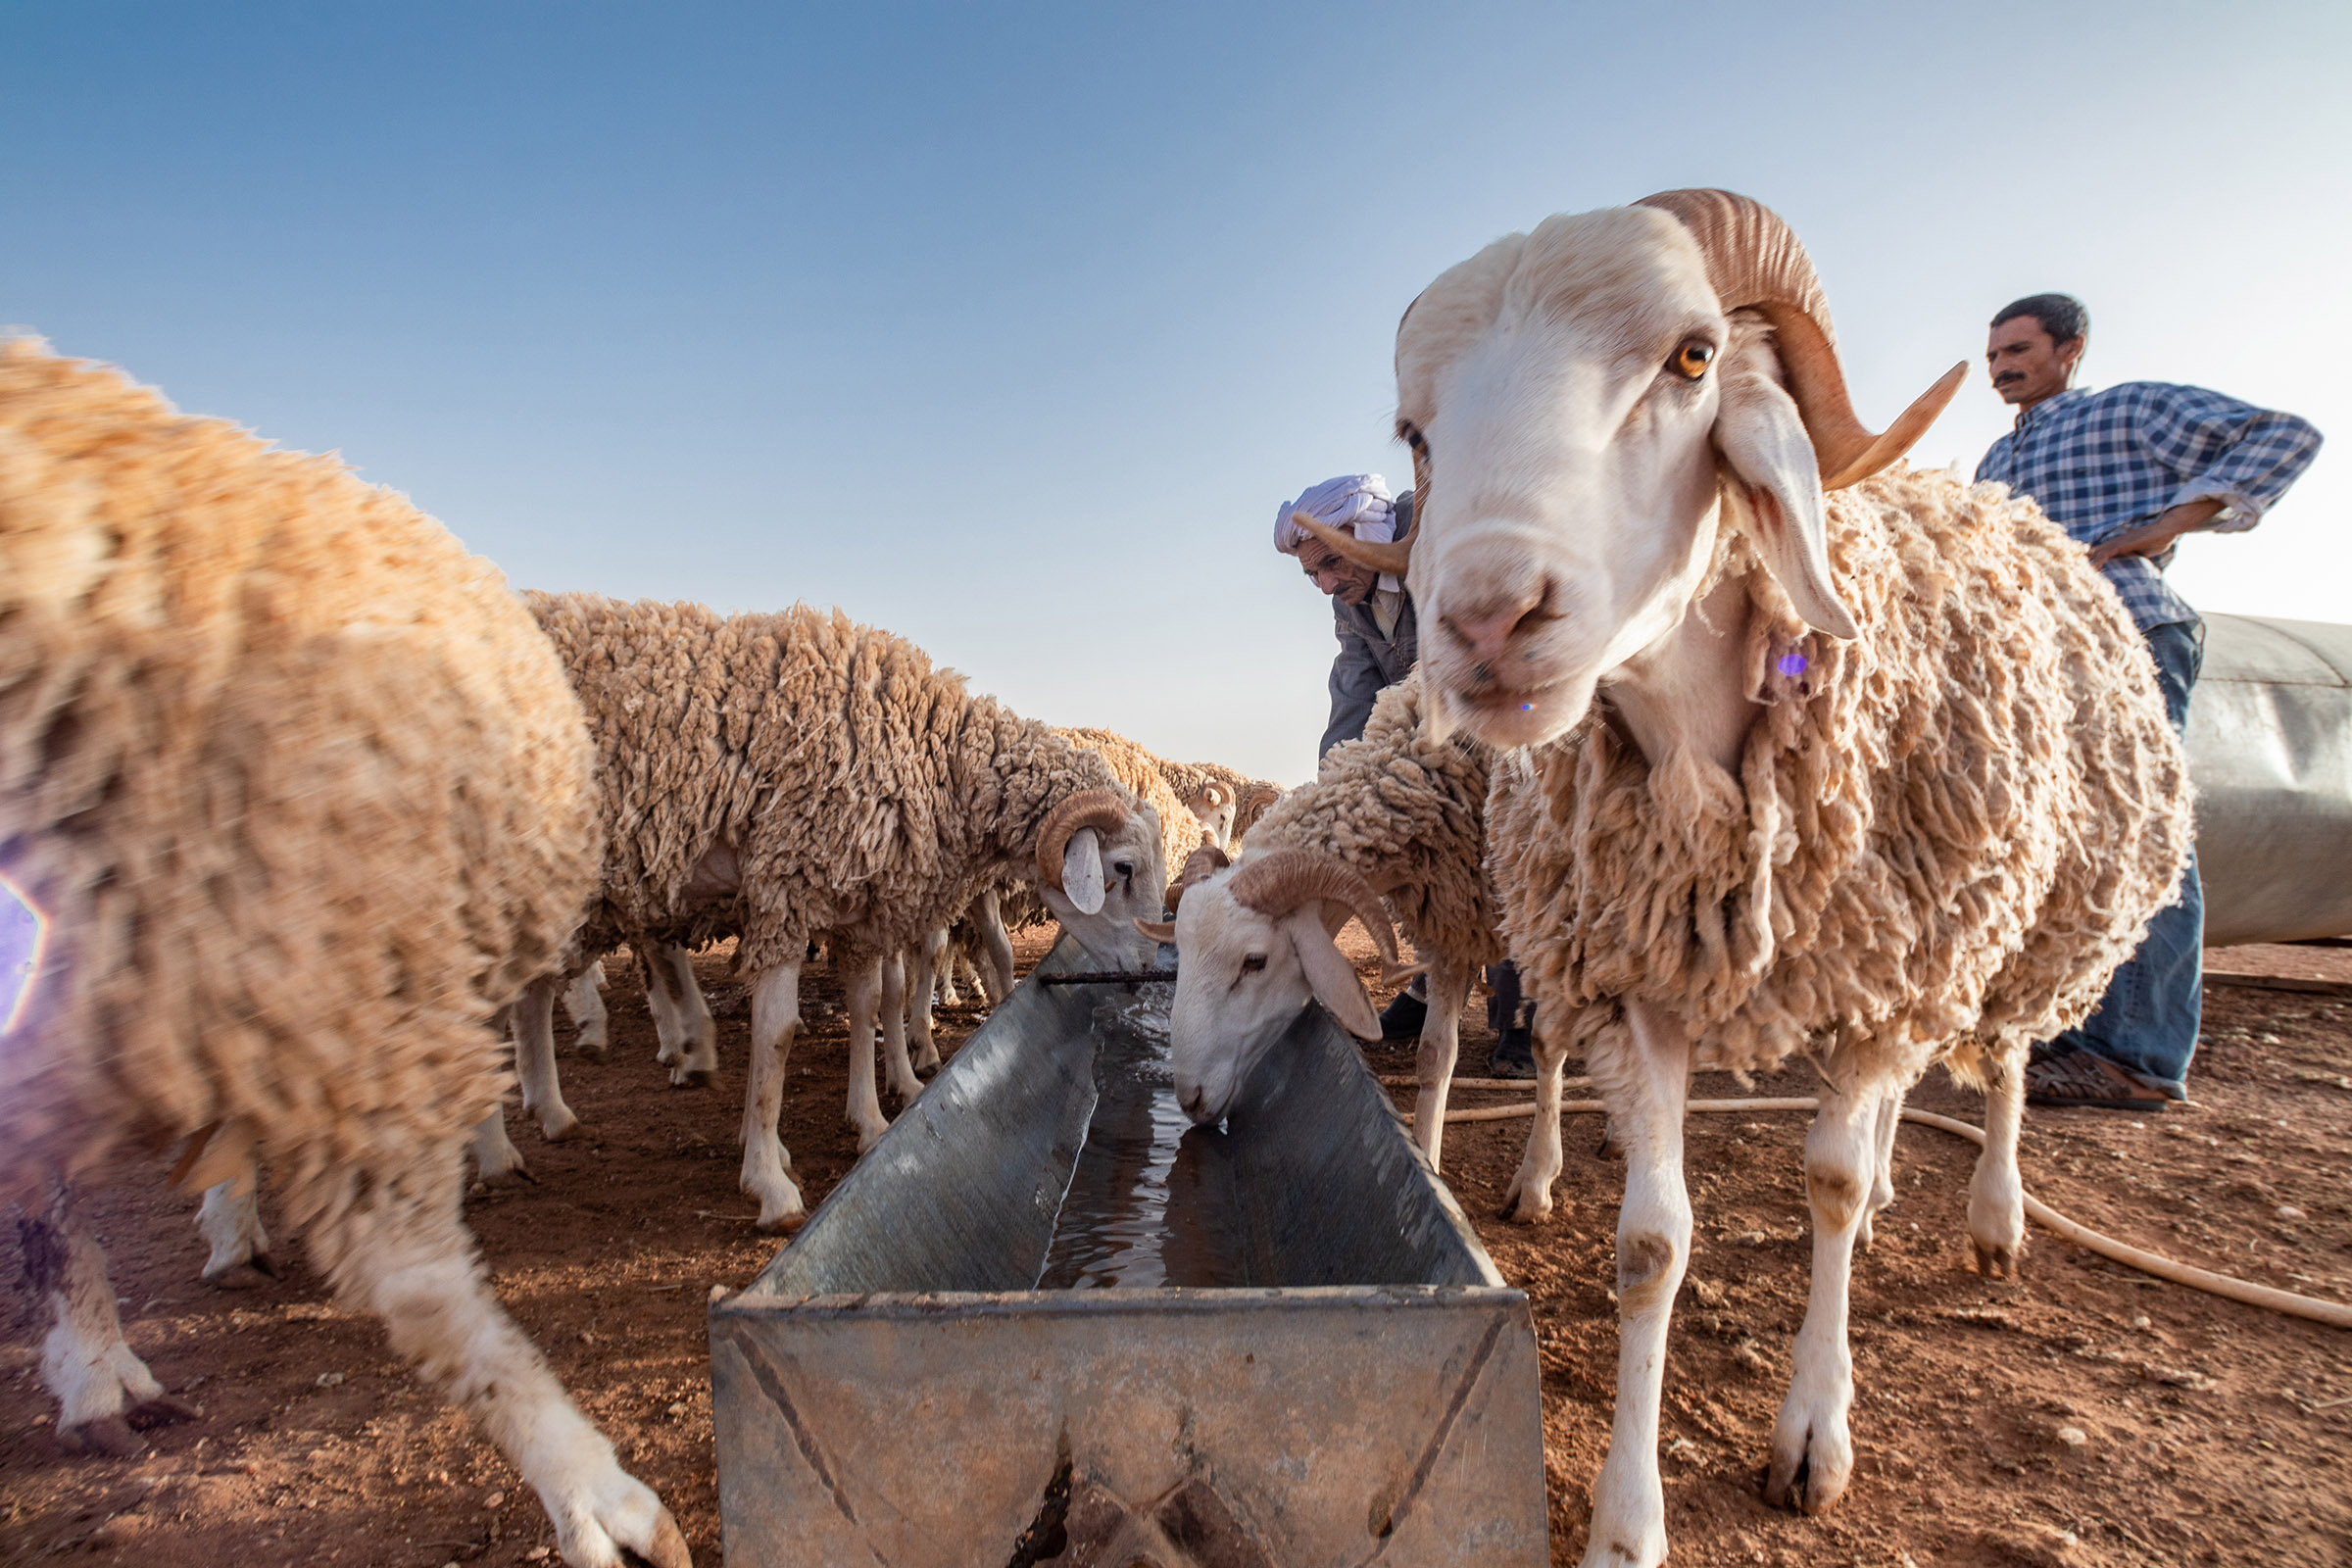 28 June 2020: Mohamed and Abdelkader Dahmoune pour water into a trough for their flock of Rembi sheep. (Photograph by Abderazak HadjTahar)